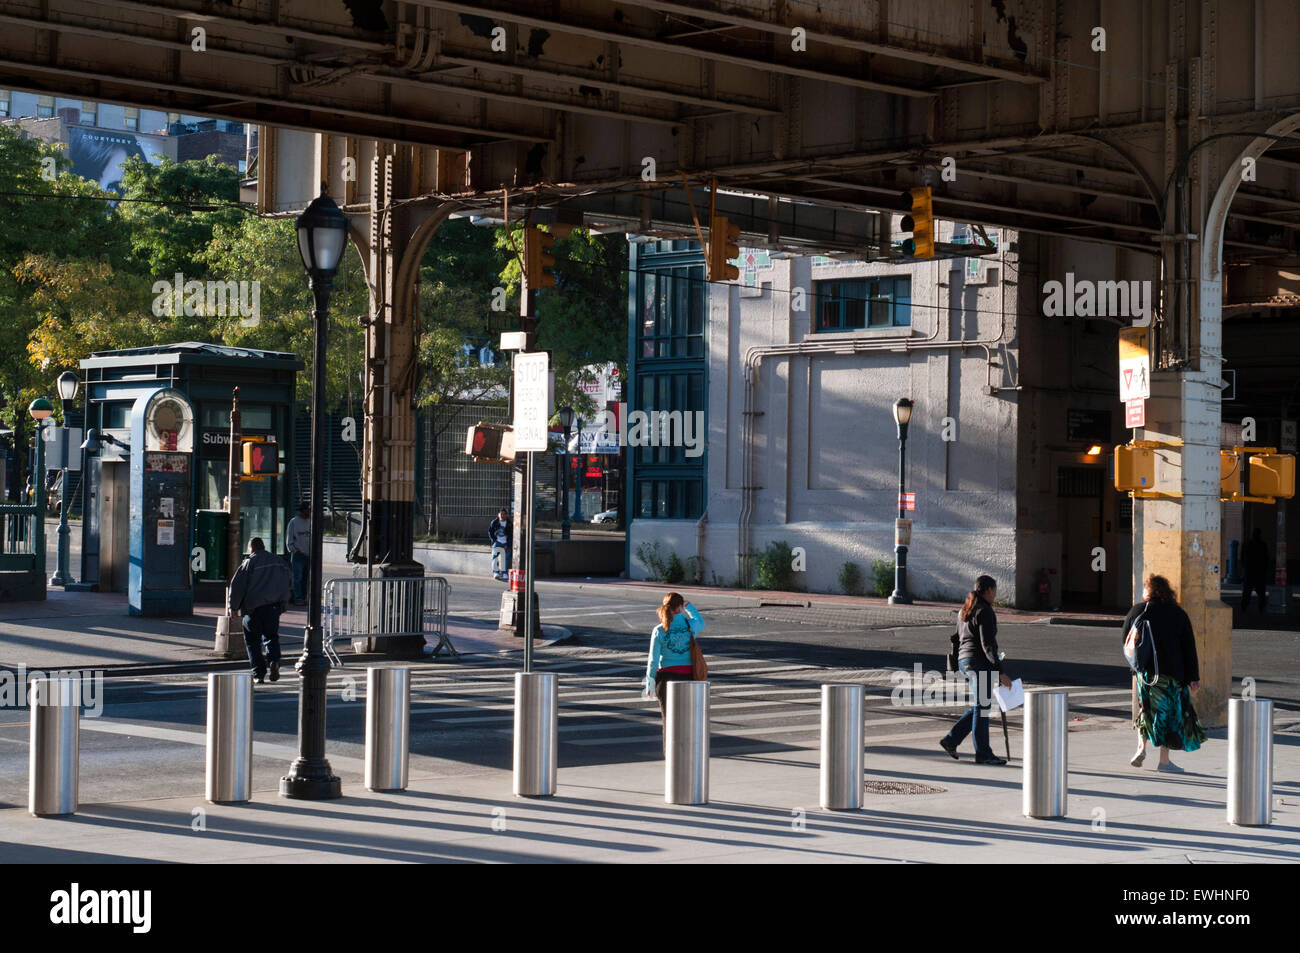 Typical landscape in the Bronx near a elevated metro. Bronx Thinking nothing can make us imagine some friendly faces - Stock Image